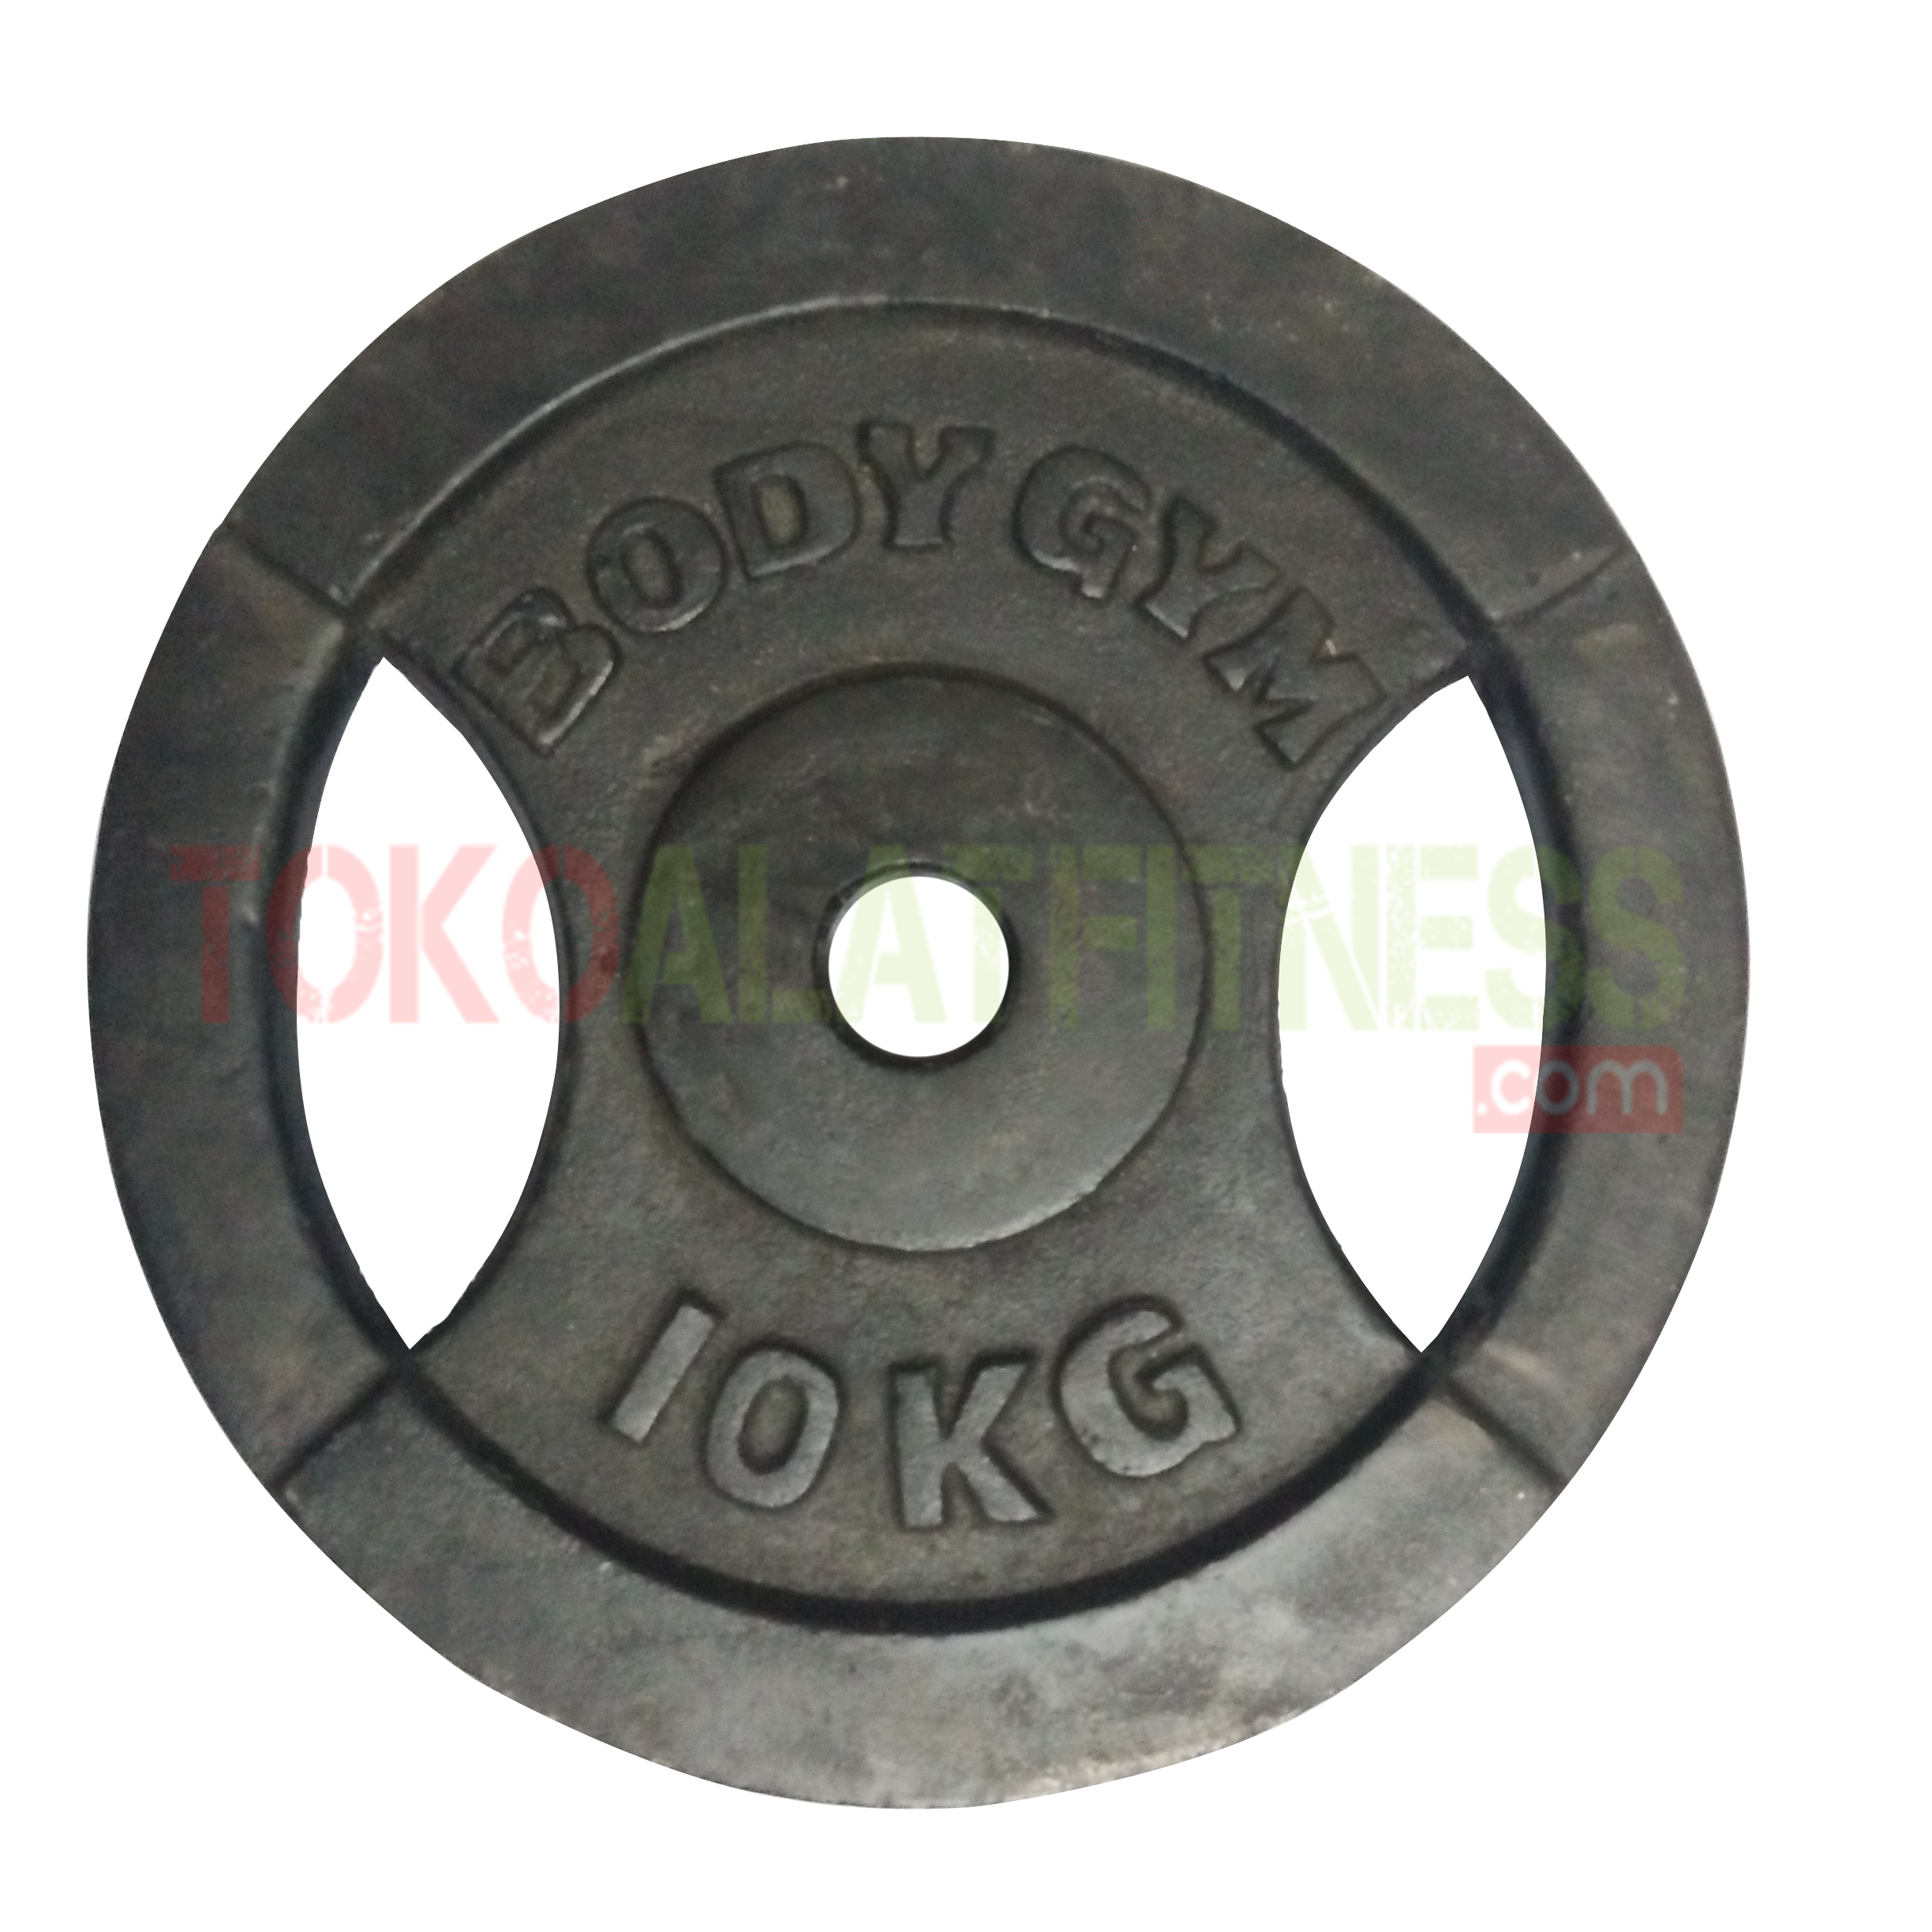 iron plate 5 cm 10 kg - Iron Plate Grip 3cm 10 kg, Barbel Plate Body Gym